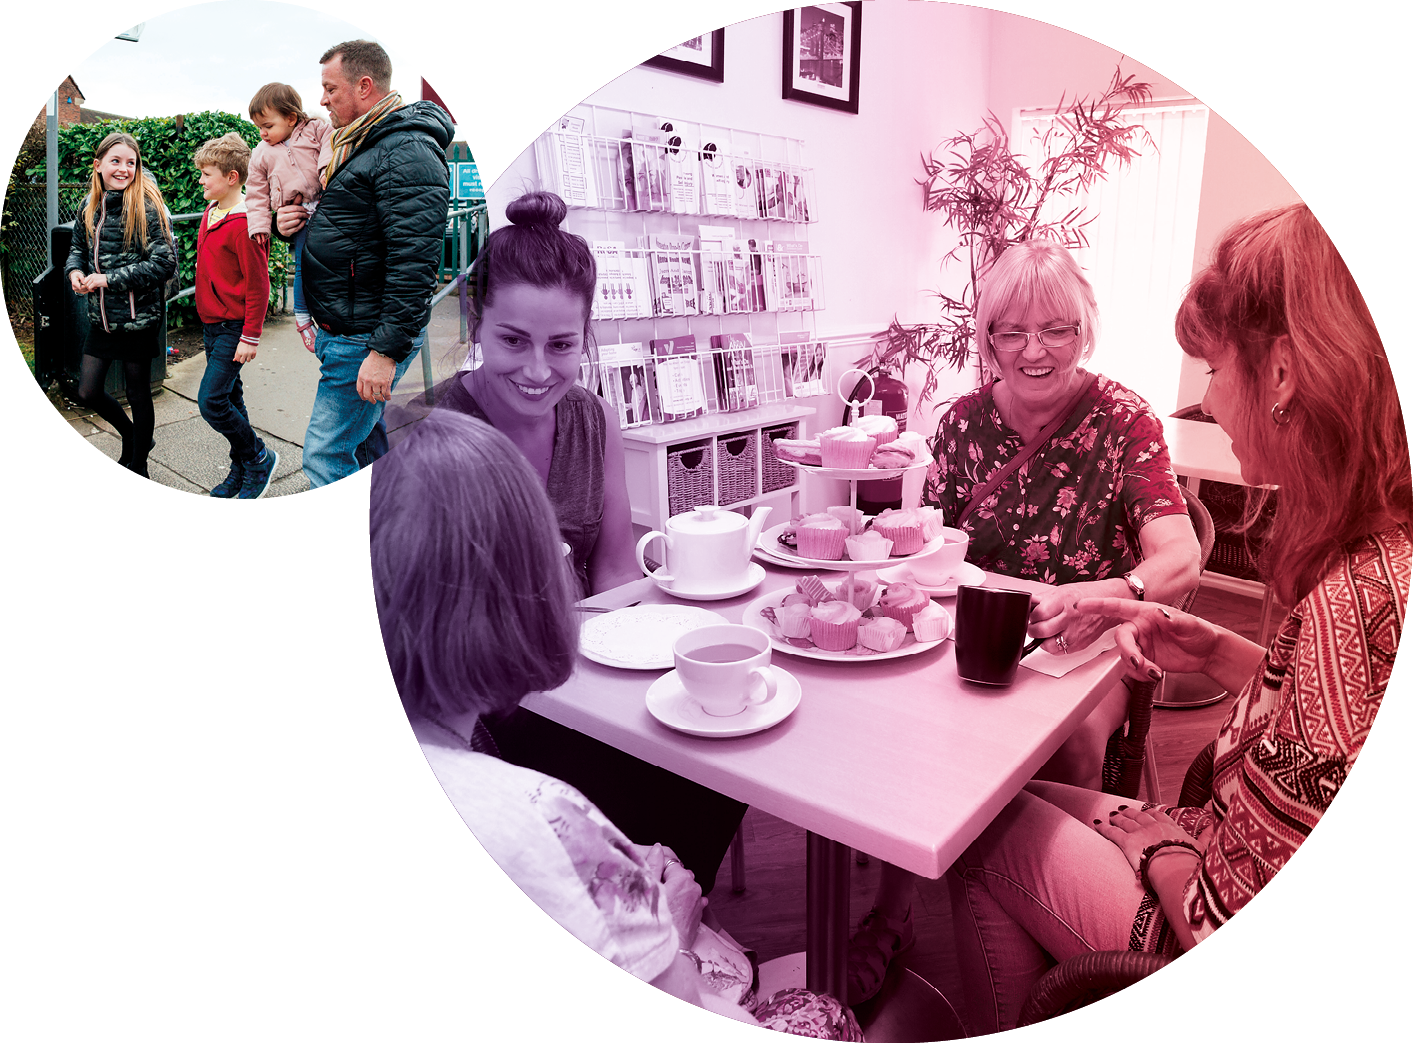 Images of family coming home from school and a care home tea party